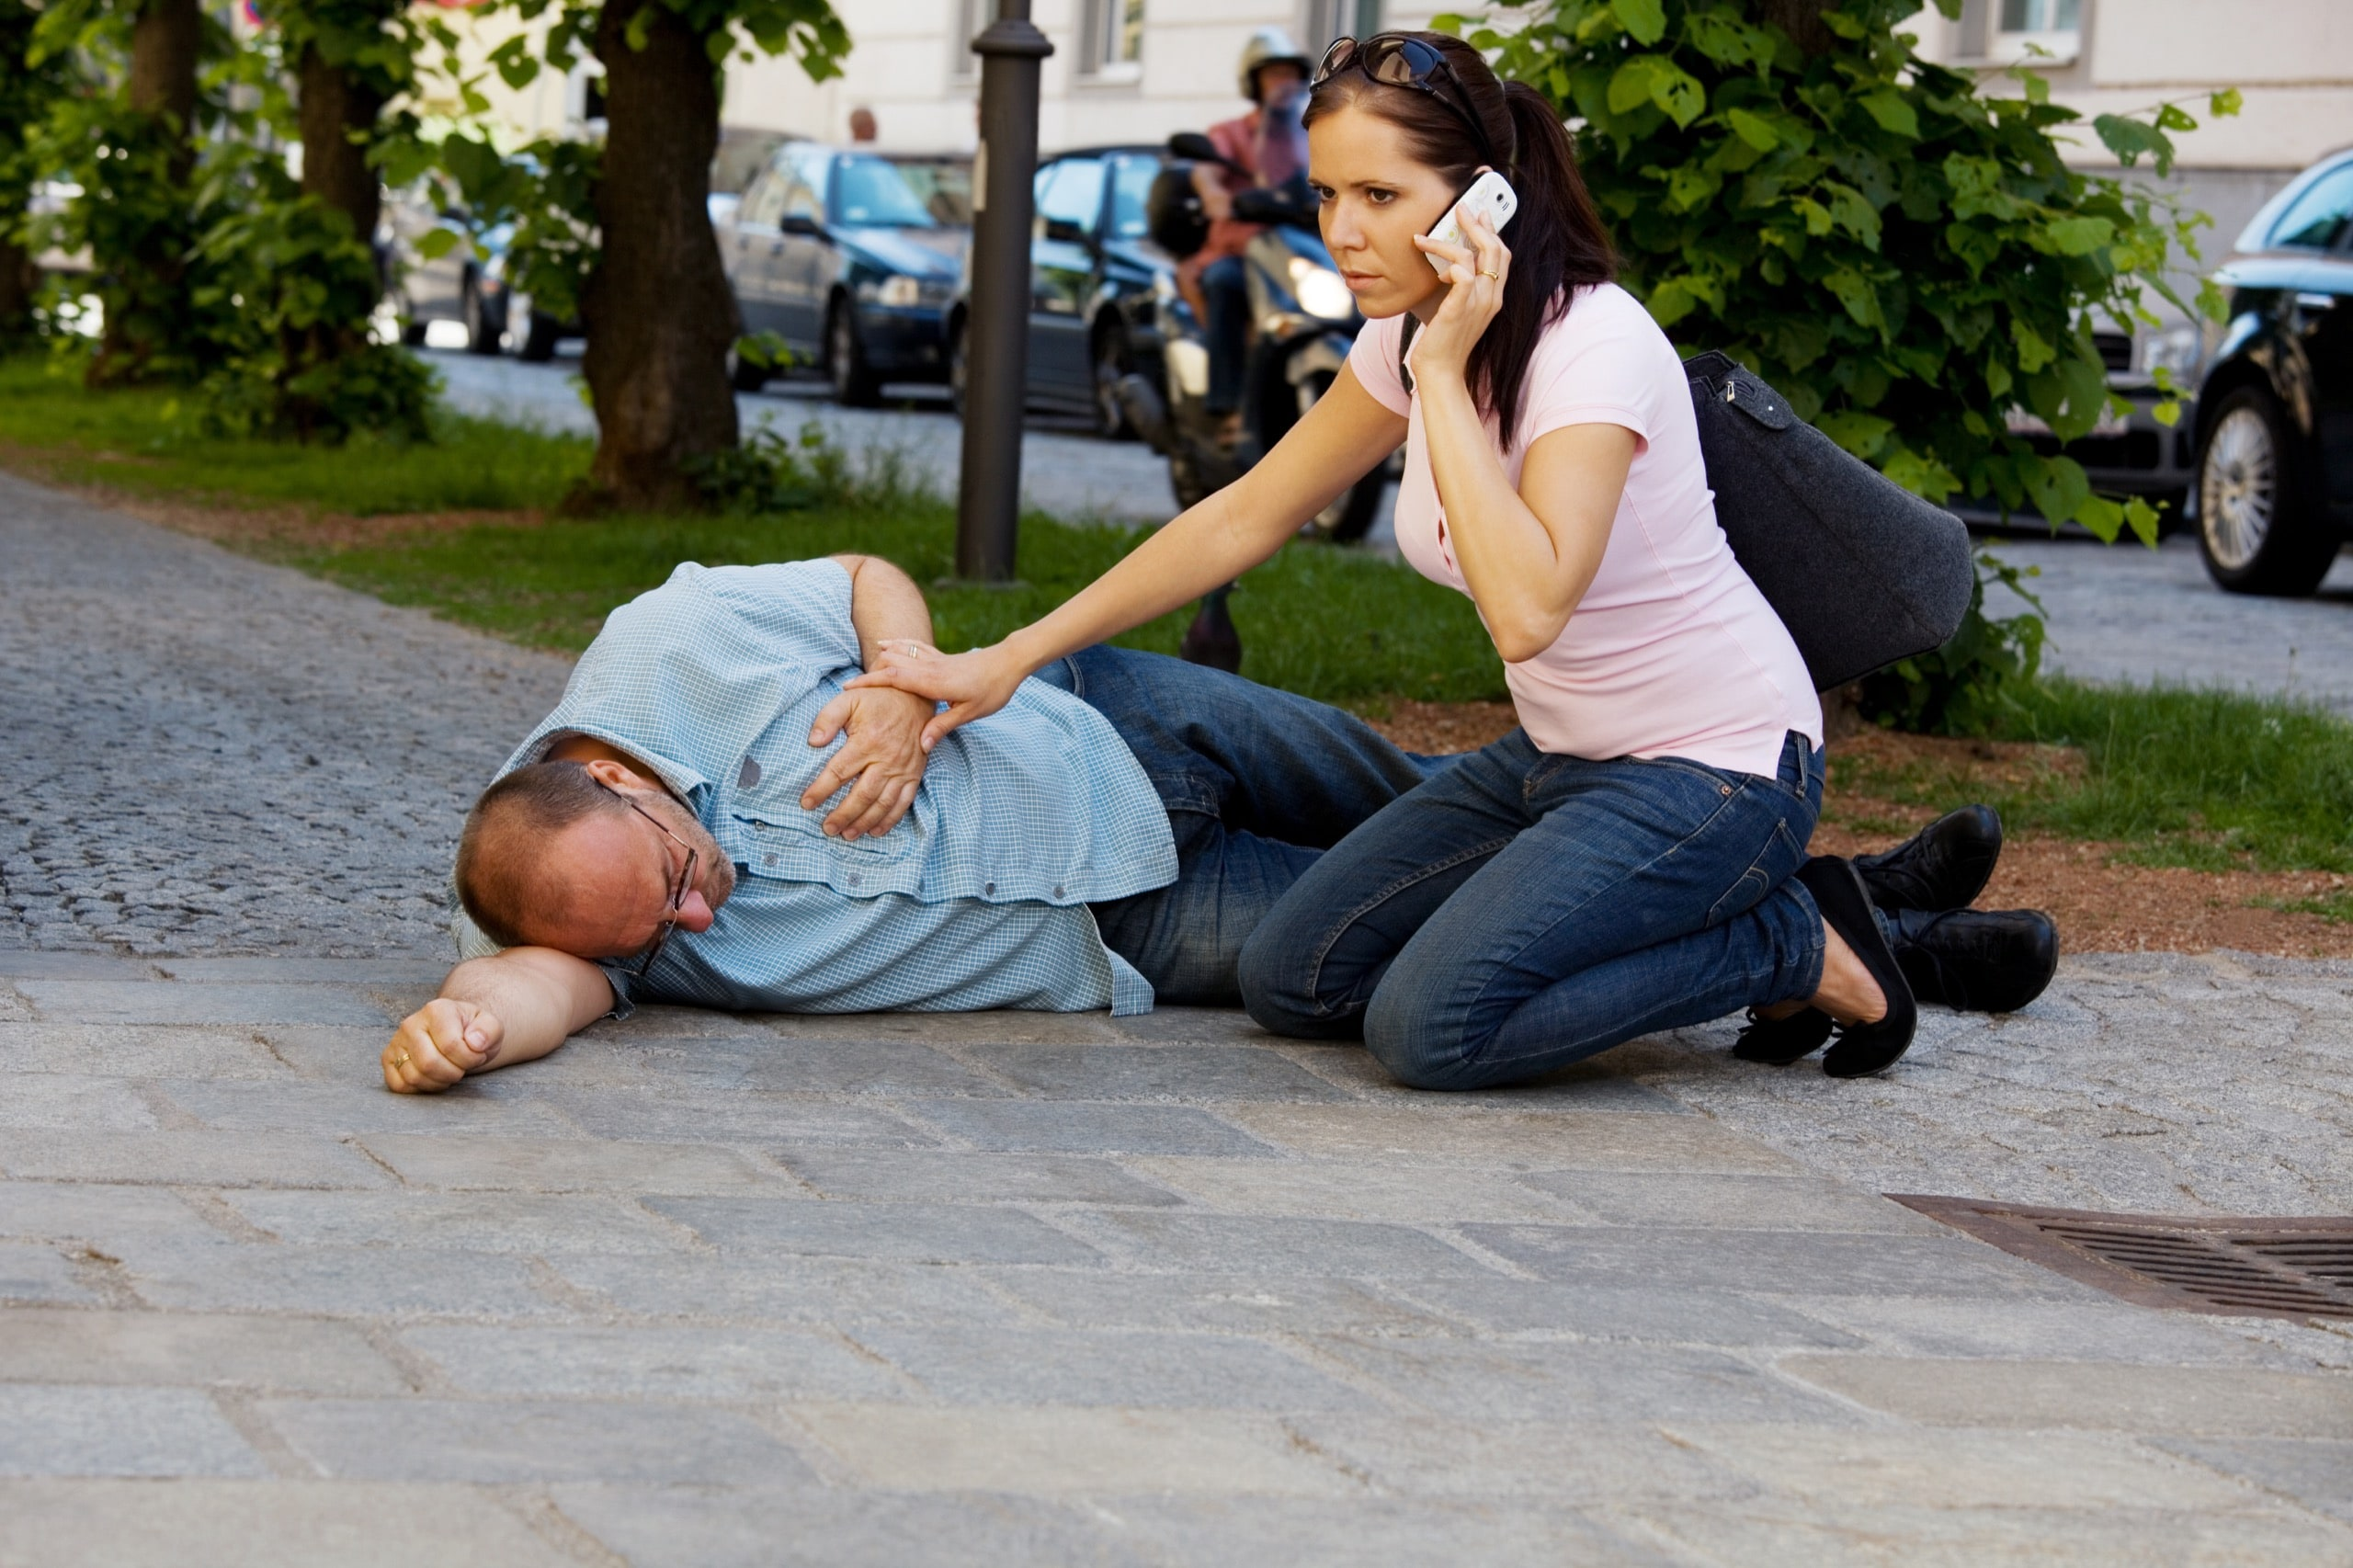 A man has a dizzy spell or a heart attack. Woman comes to the rescue.